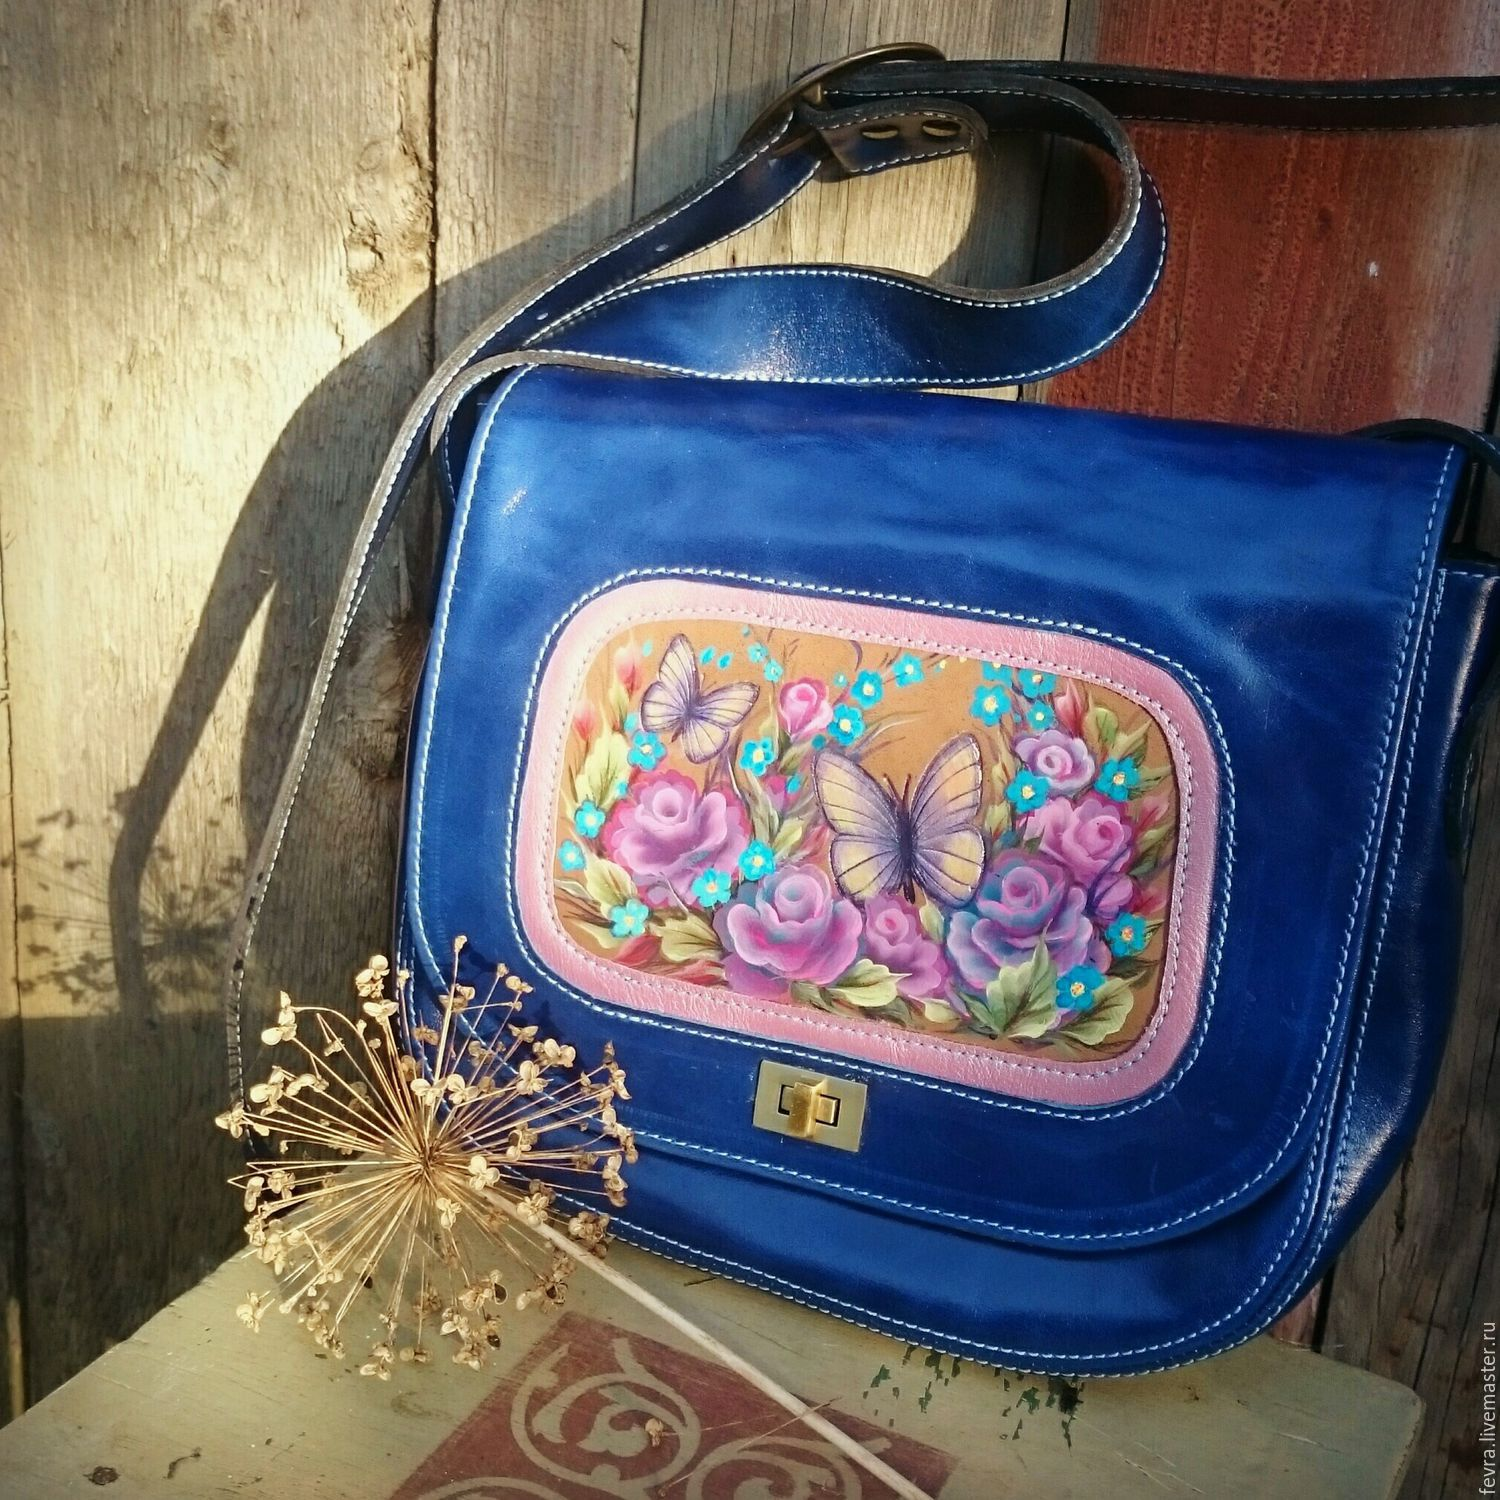 Romantic walks, country trips and even everyday moving around the city becomes much more enjoyable and emotional with this handbag.